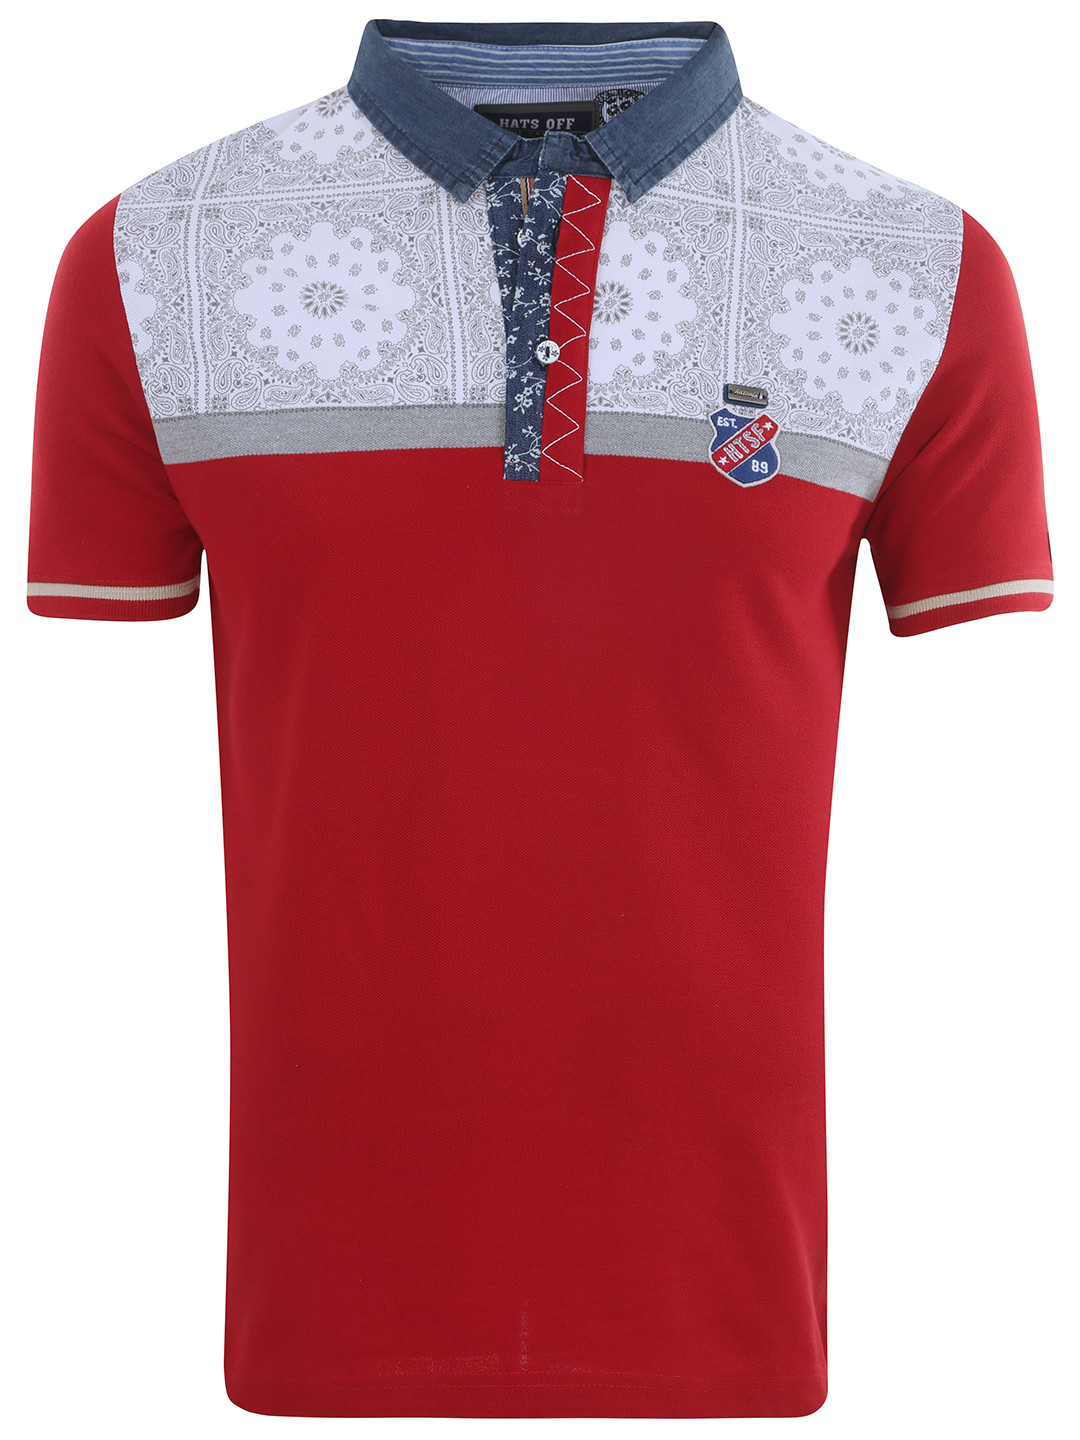 Hats Off Plain Printed White And Red Slim Fit Casual Wear